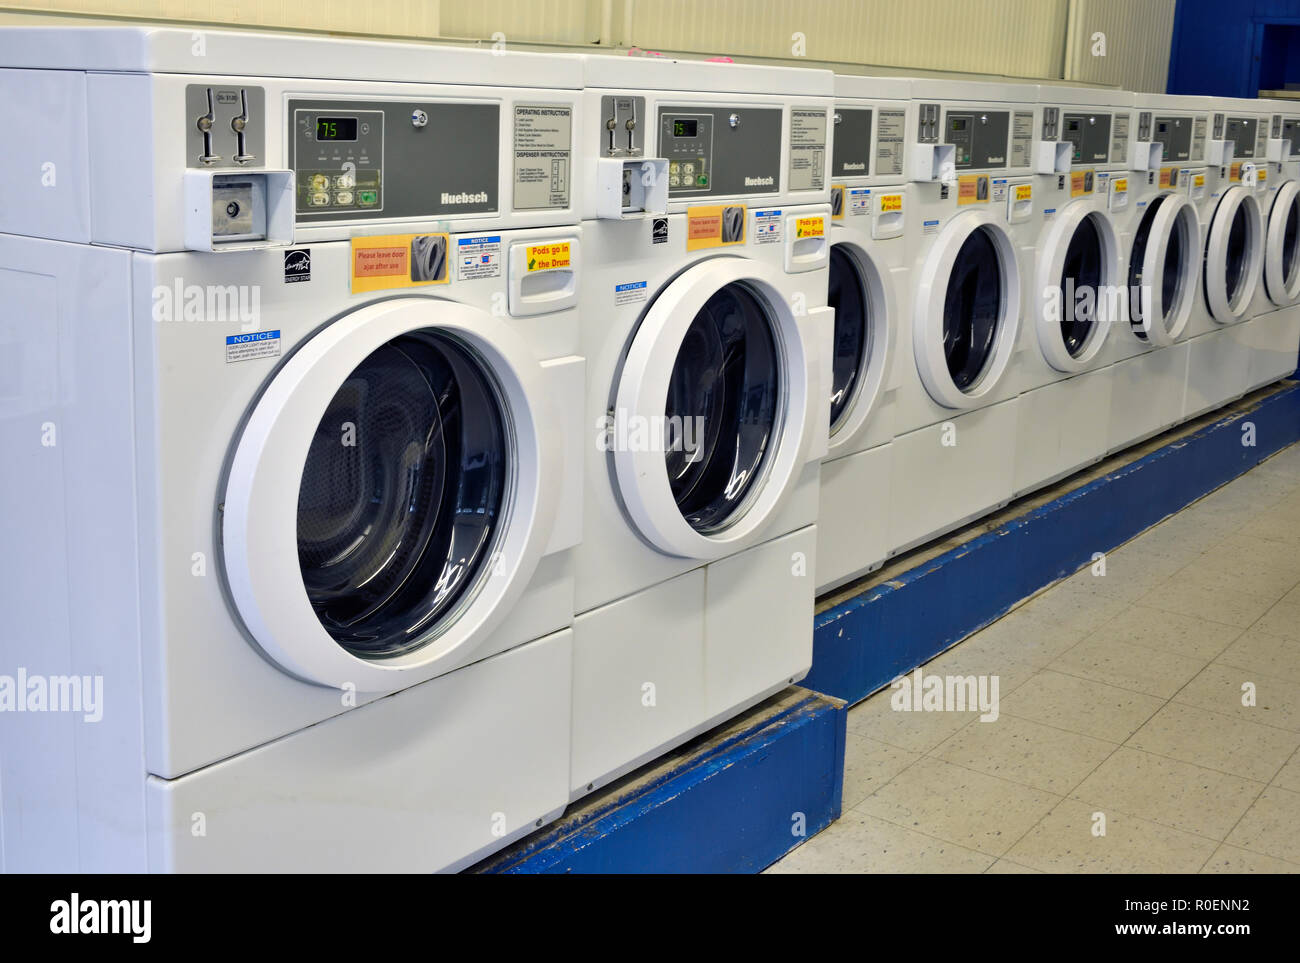 A line of coin operated washing machines in a laundry business in Sussex New Brunswick Canada - Stock Image